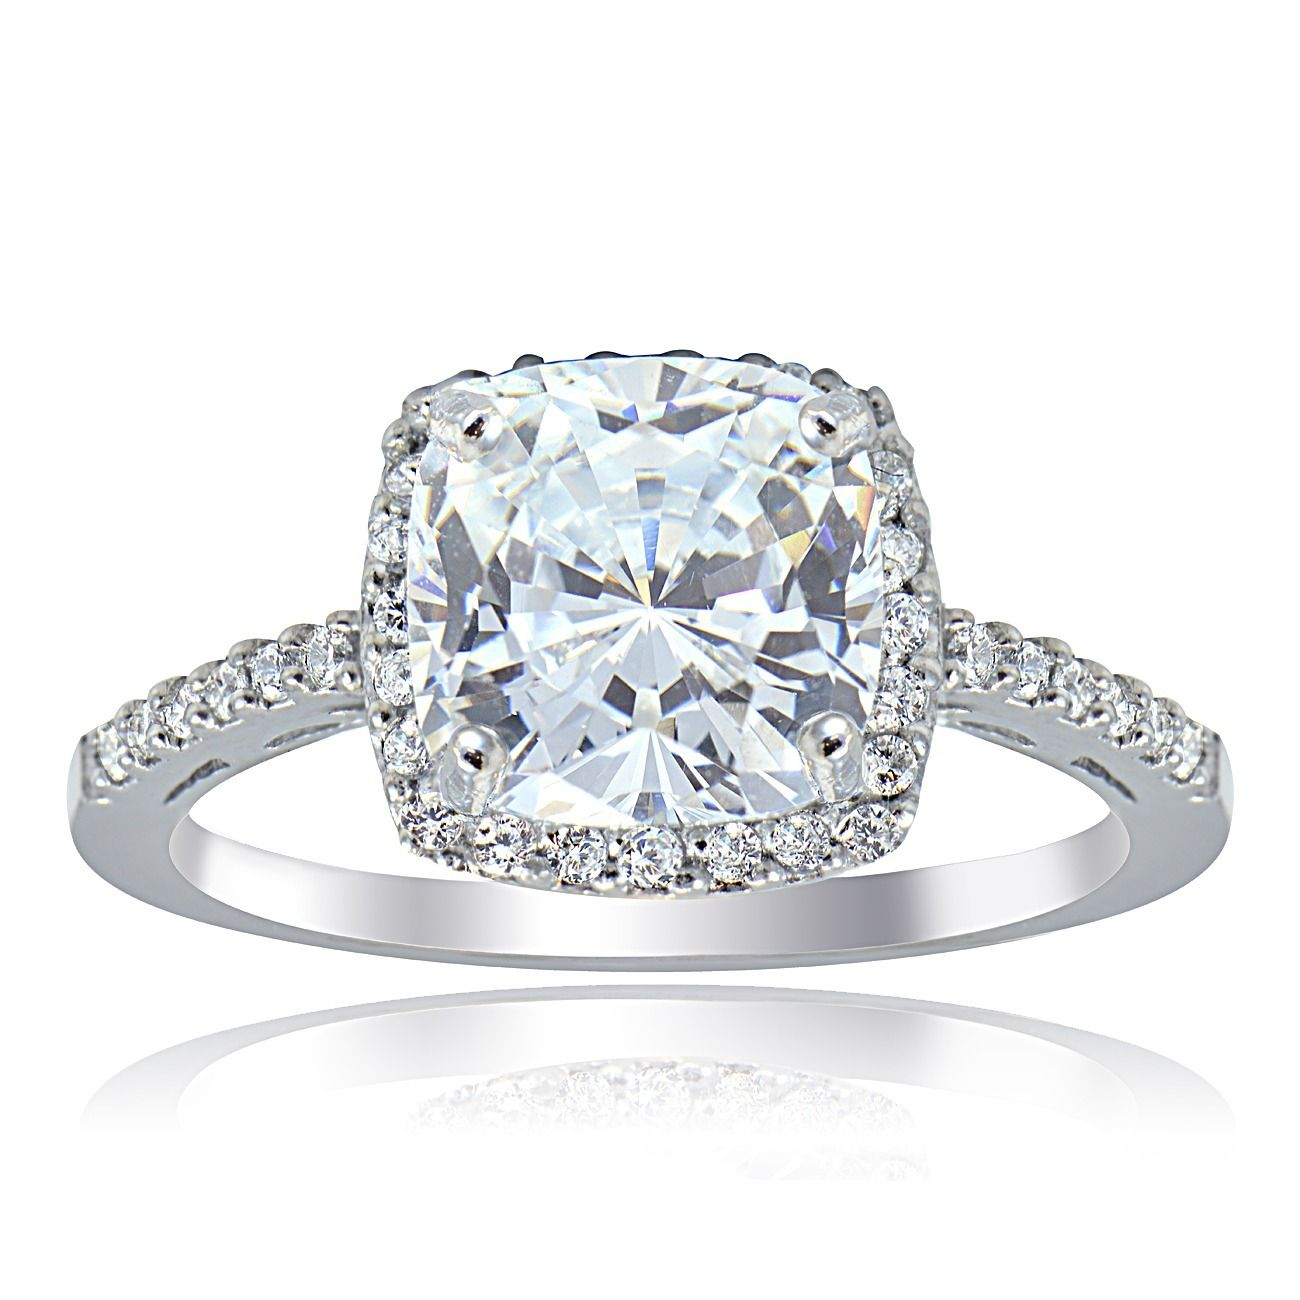 Icz Stonez Sterling Square-cut Cubic Zirconia Engagement-style Ring